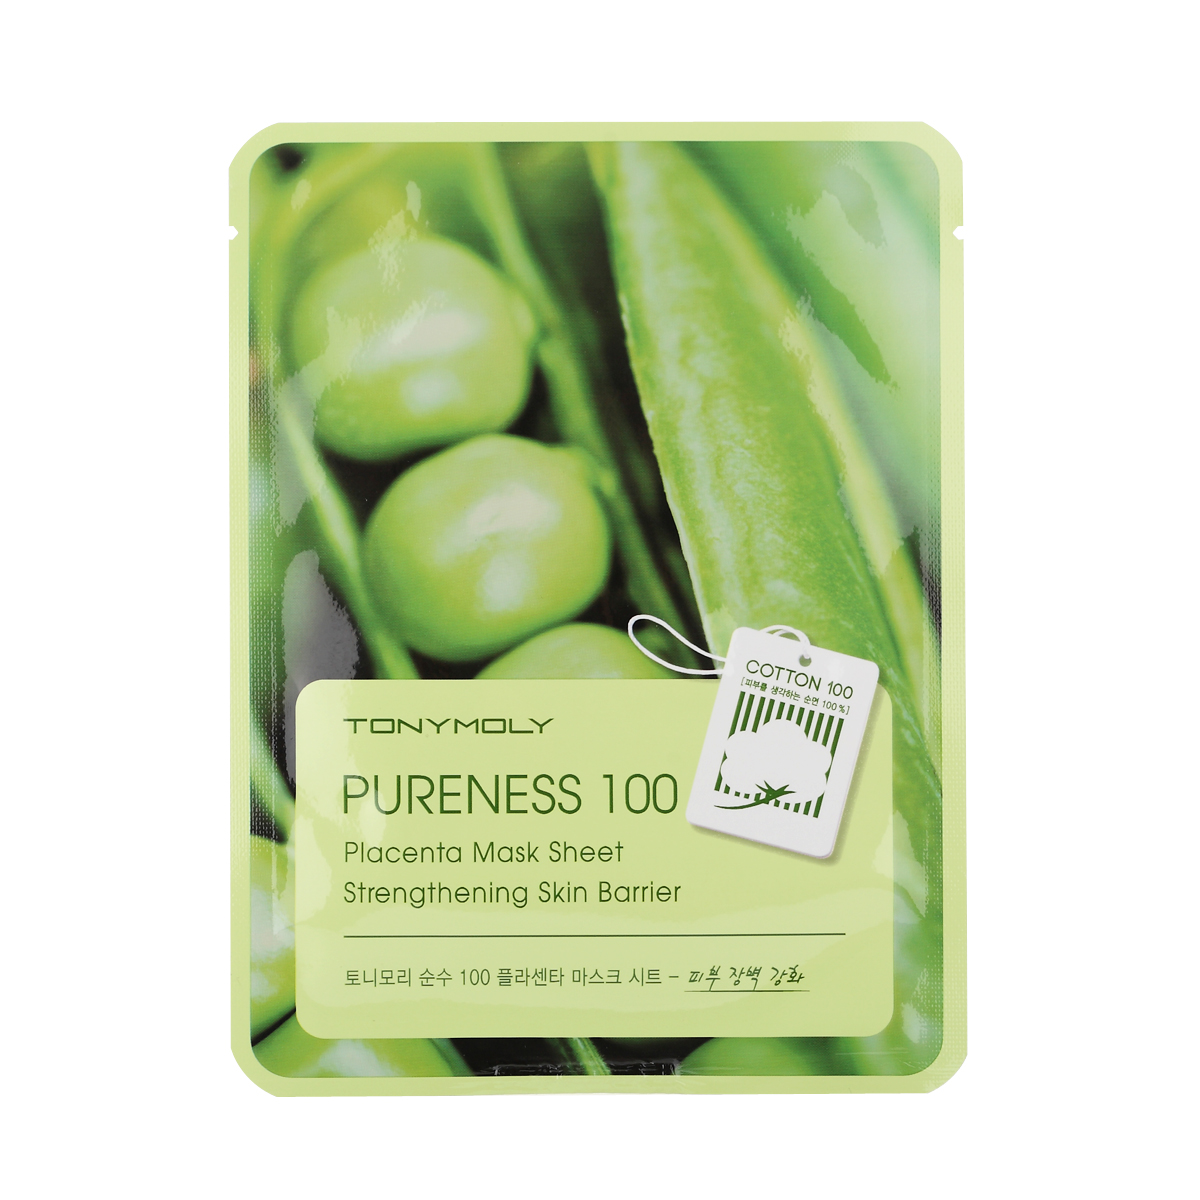 TonyMoly Тканевая маска с экстрактом растительной плаценты Pureness 100 Placenta Mask Sheet, 21 мл tony moly sheet gel mask pureness 100 collagen маска тканевая с экстрактом коллагена 21 мл